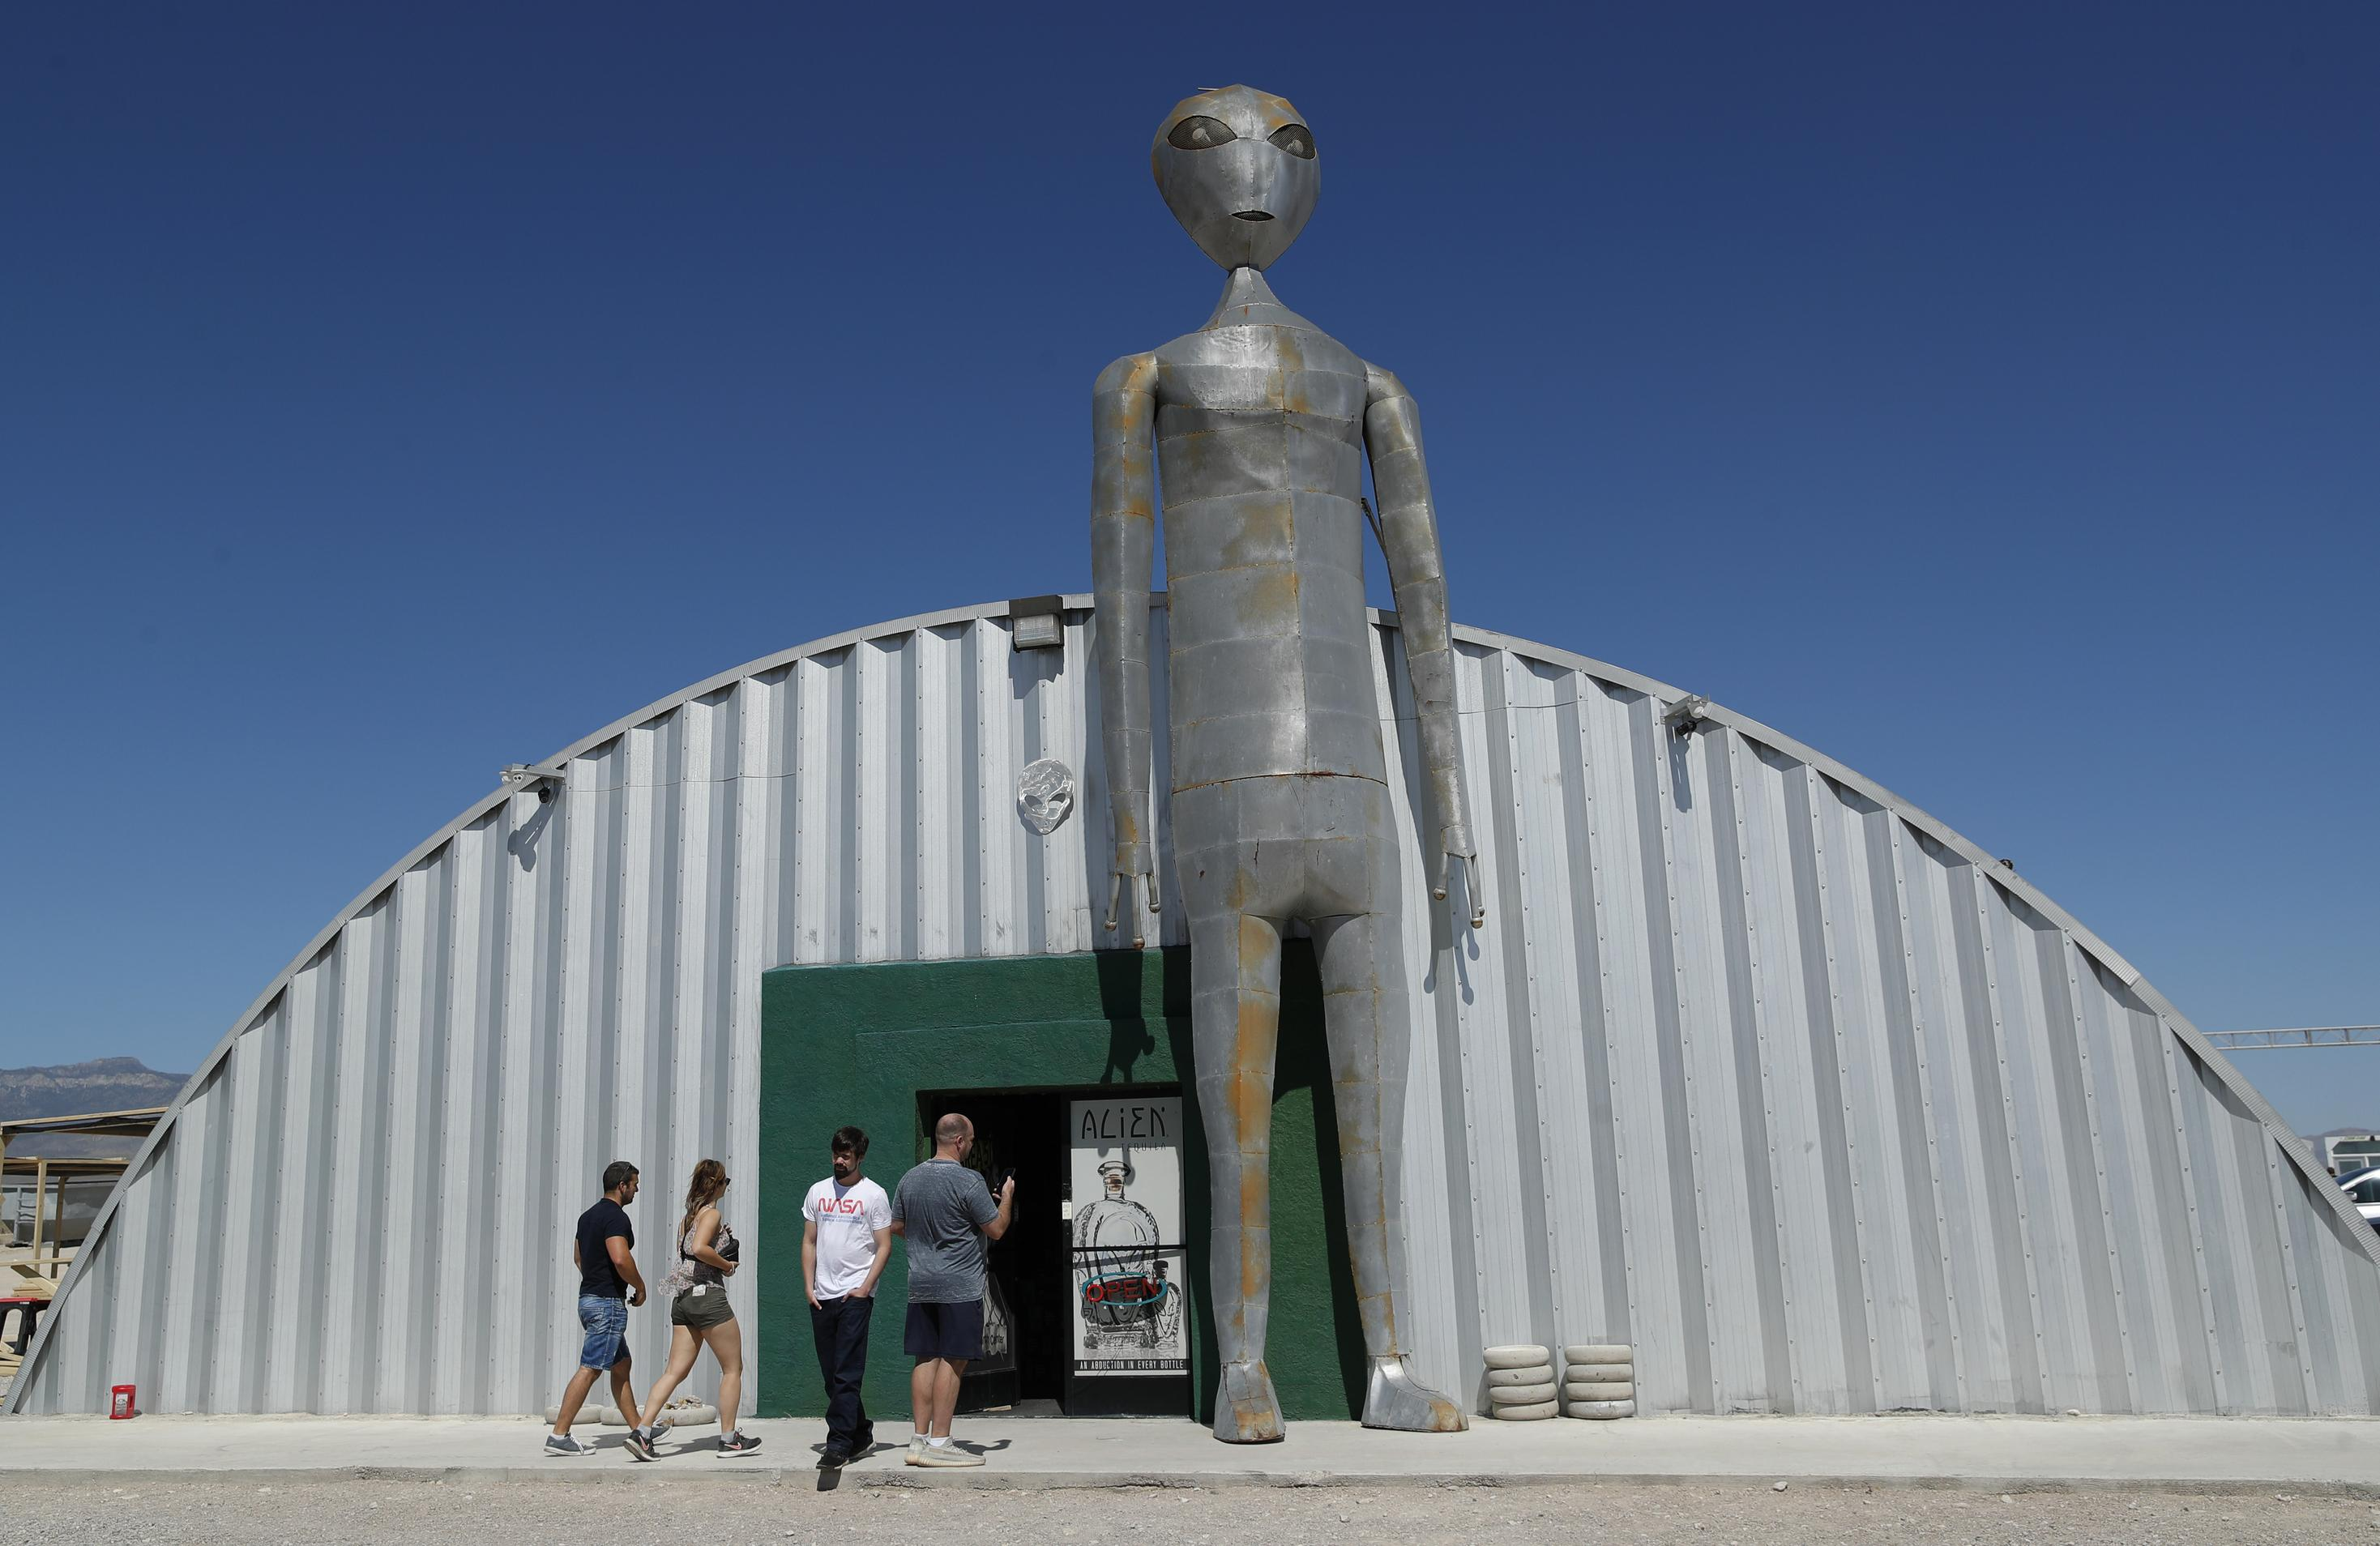 About 75 People Gather At Area 51 Gate 2 People Detained Washington Times